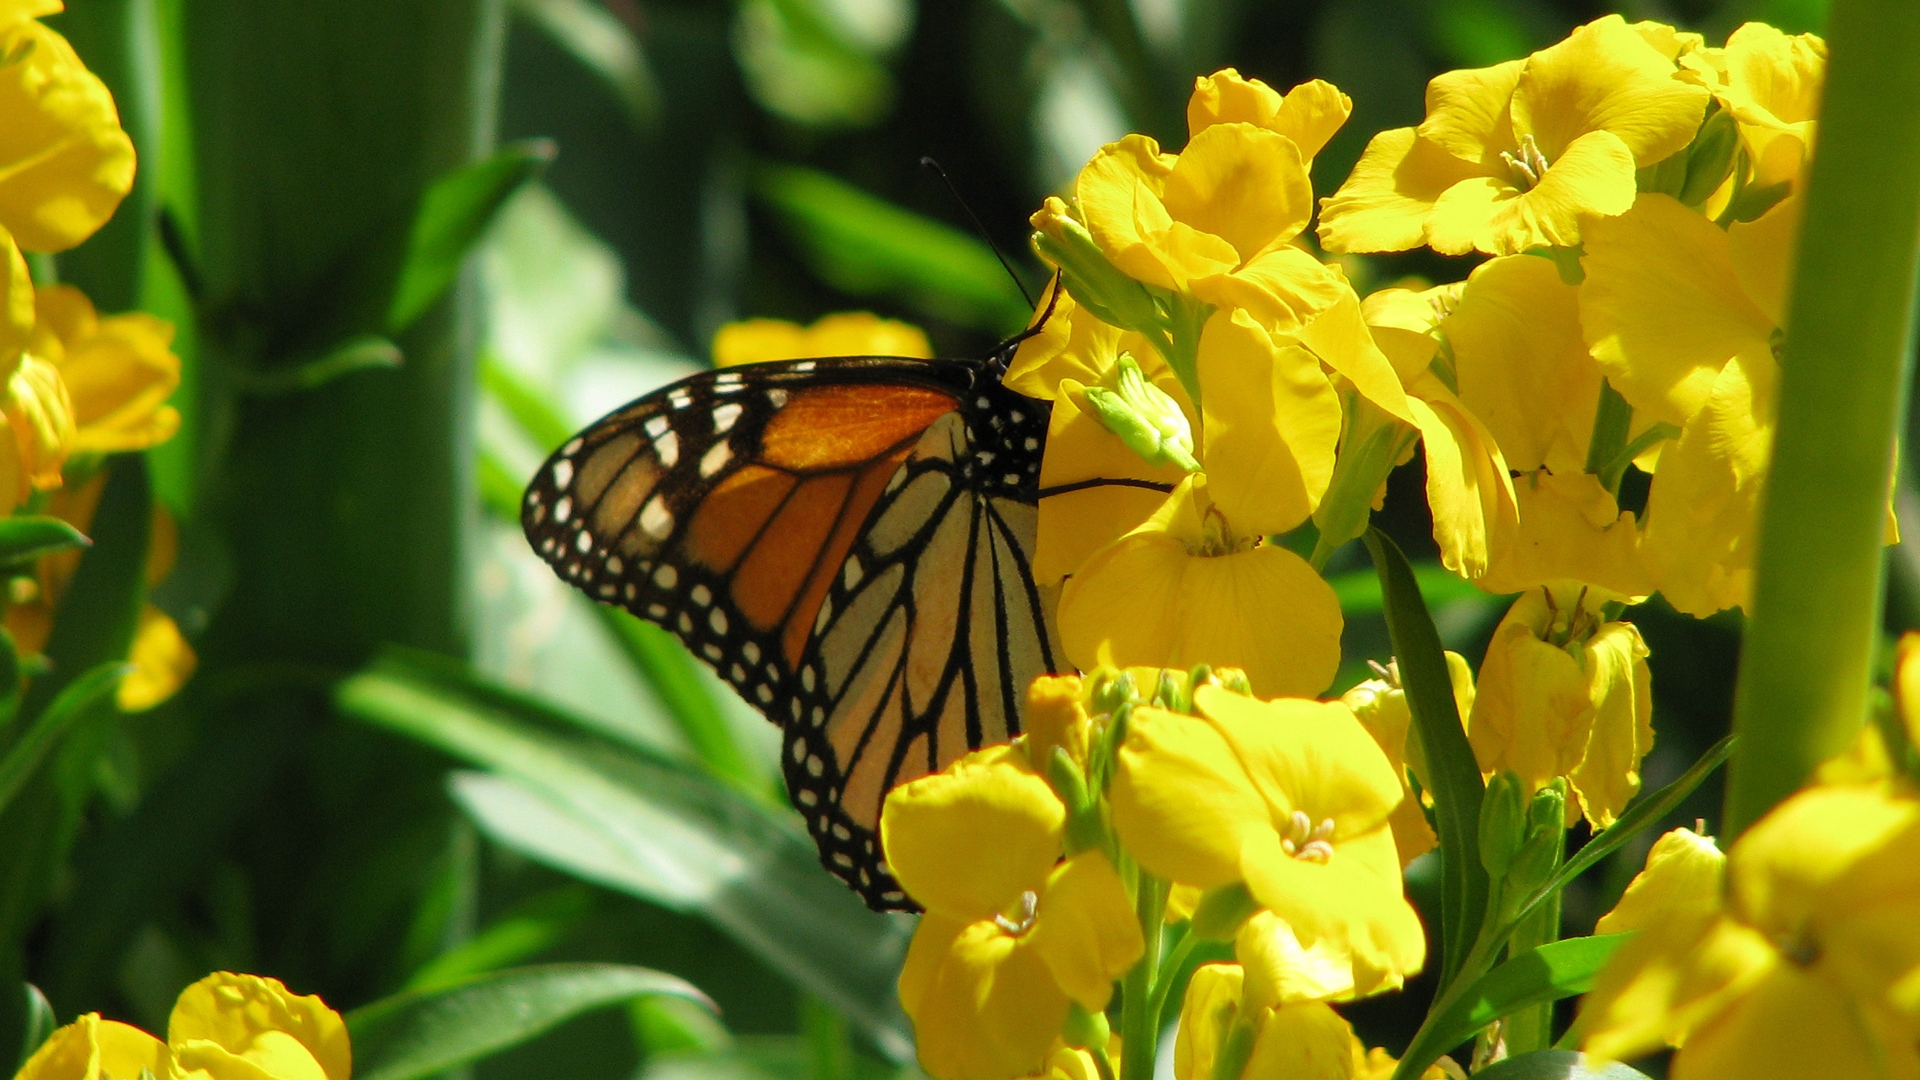 [48+] Beautiful Butterflies and Flowers Wallpapers on ...